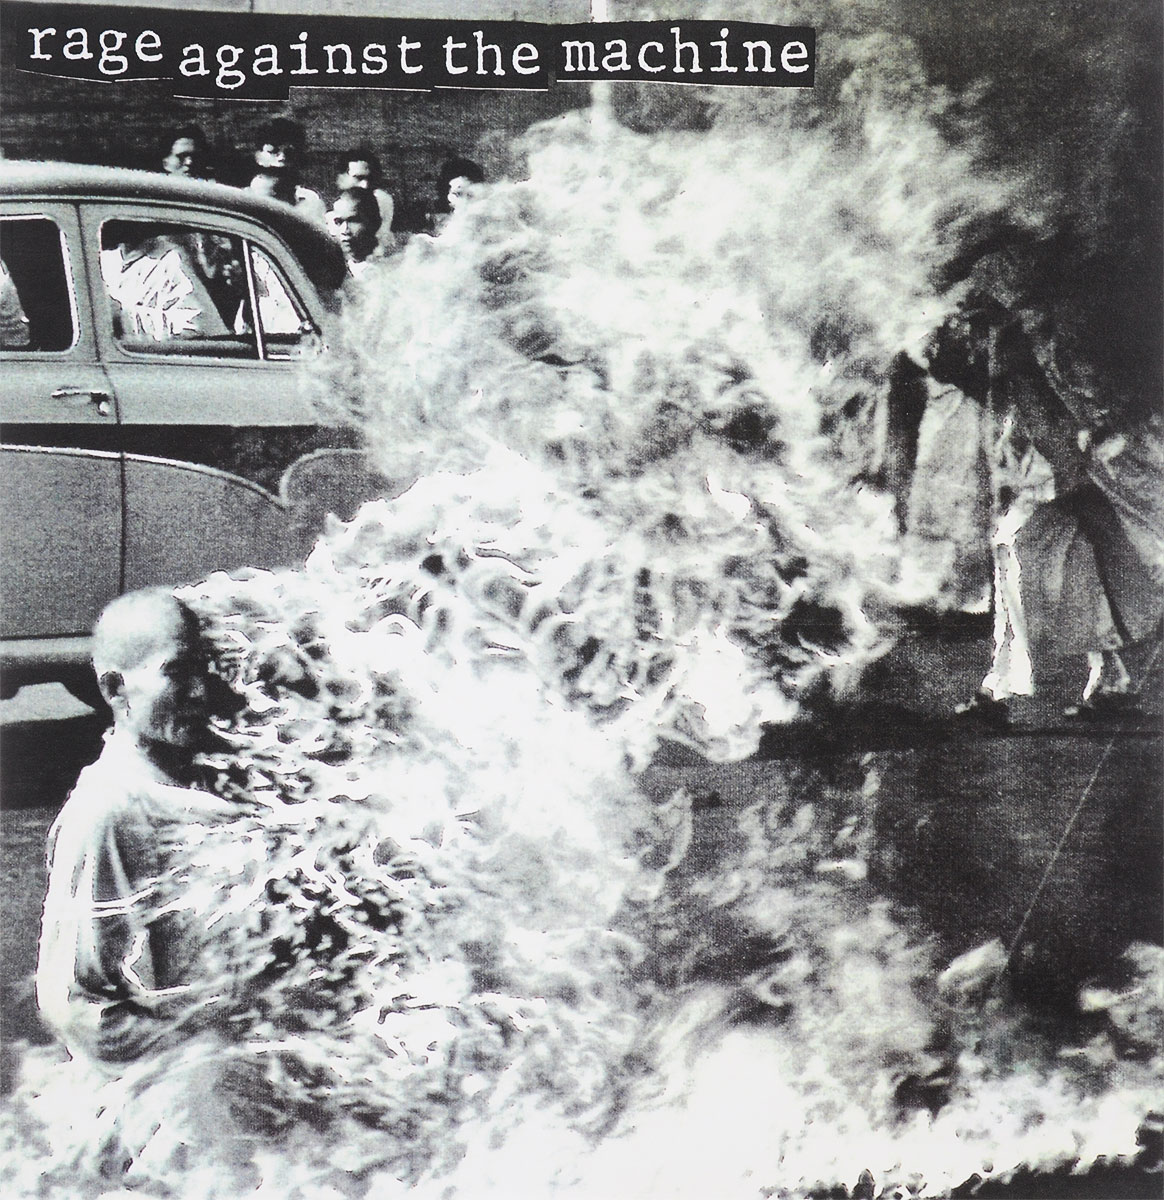 Rage Against The Machine Rage Against The Machine. Rage Against The Machine (LP) hand operate branding machine leather printer creasing machine hot foil stamping machine marking press embossing machine 5x7cm